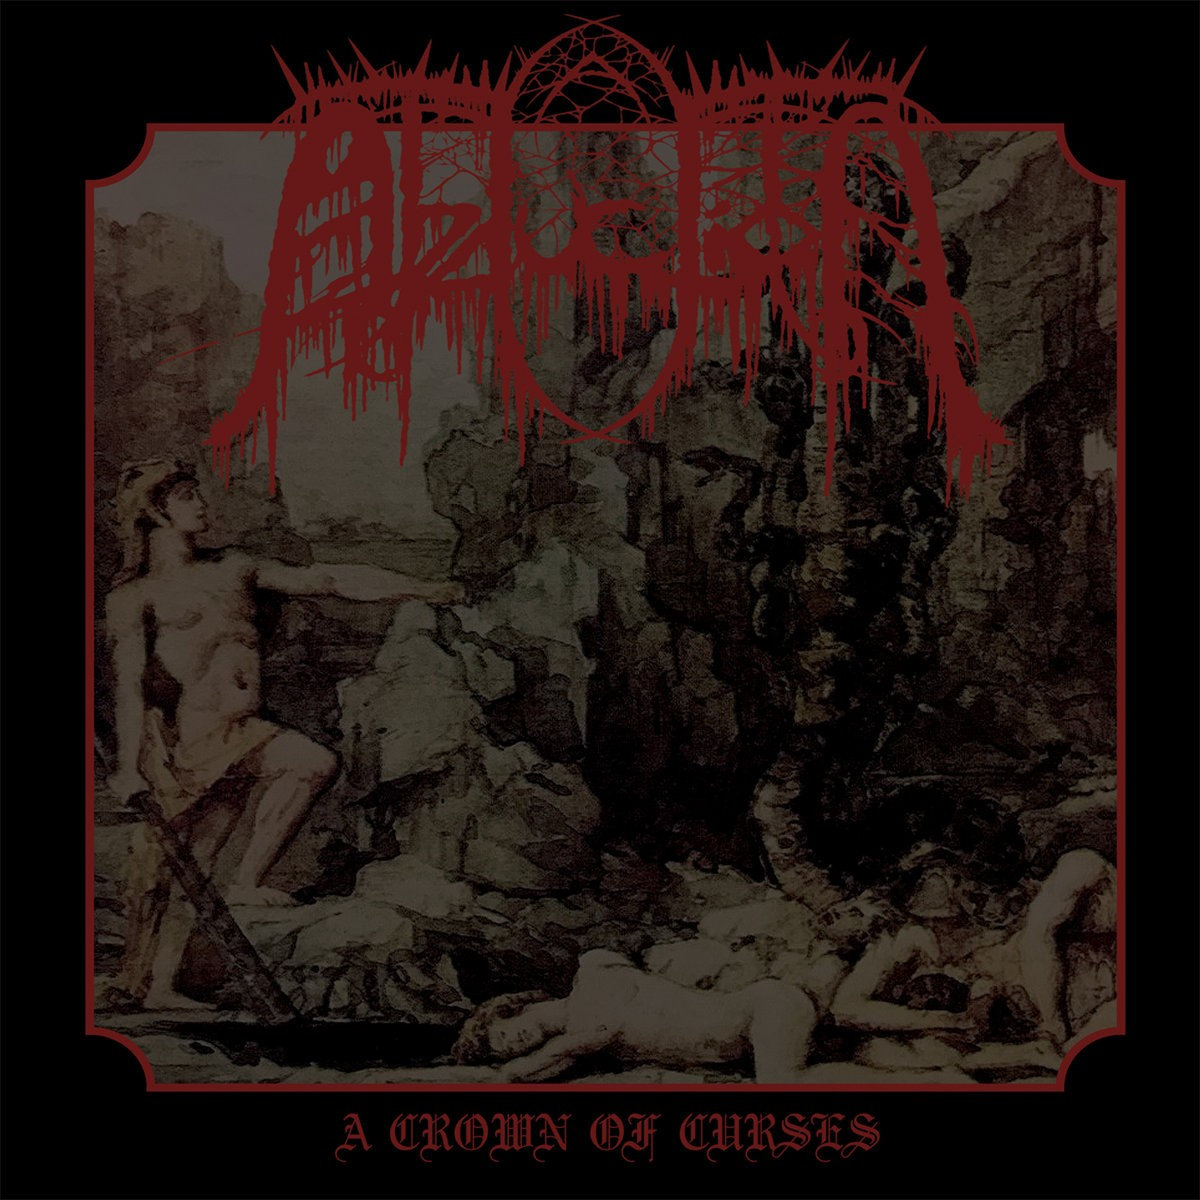 Crown of Curses by Abduction